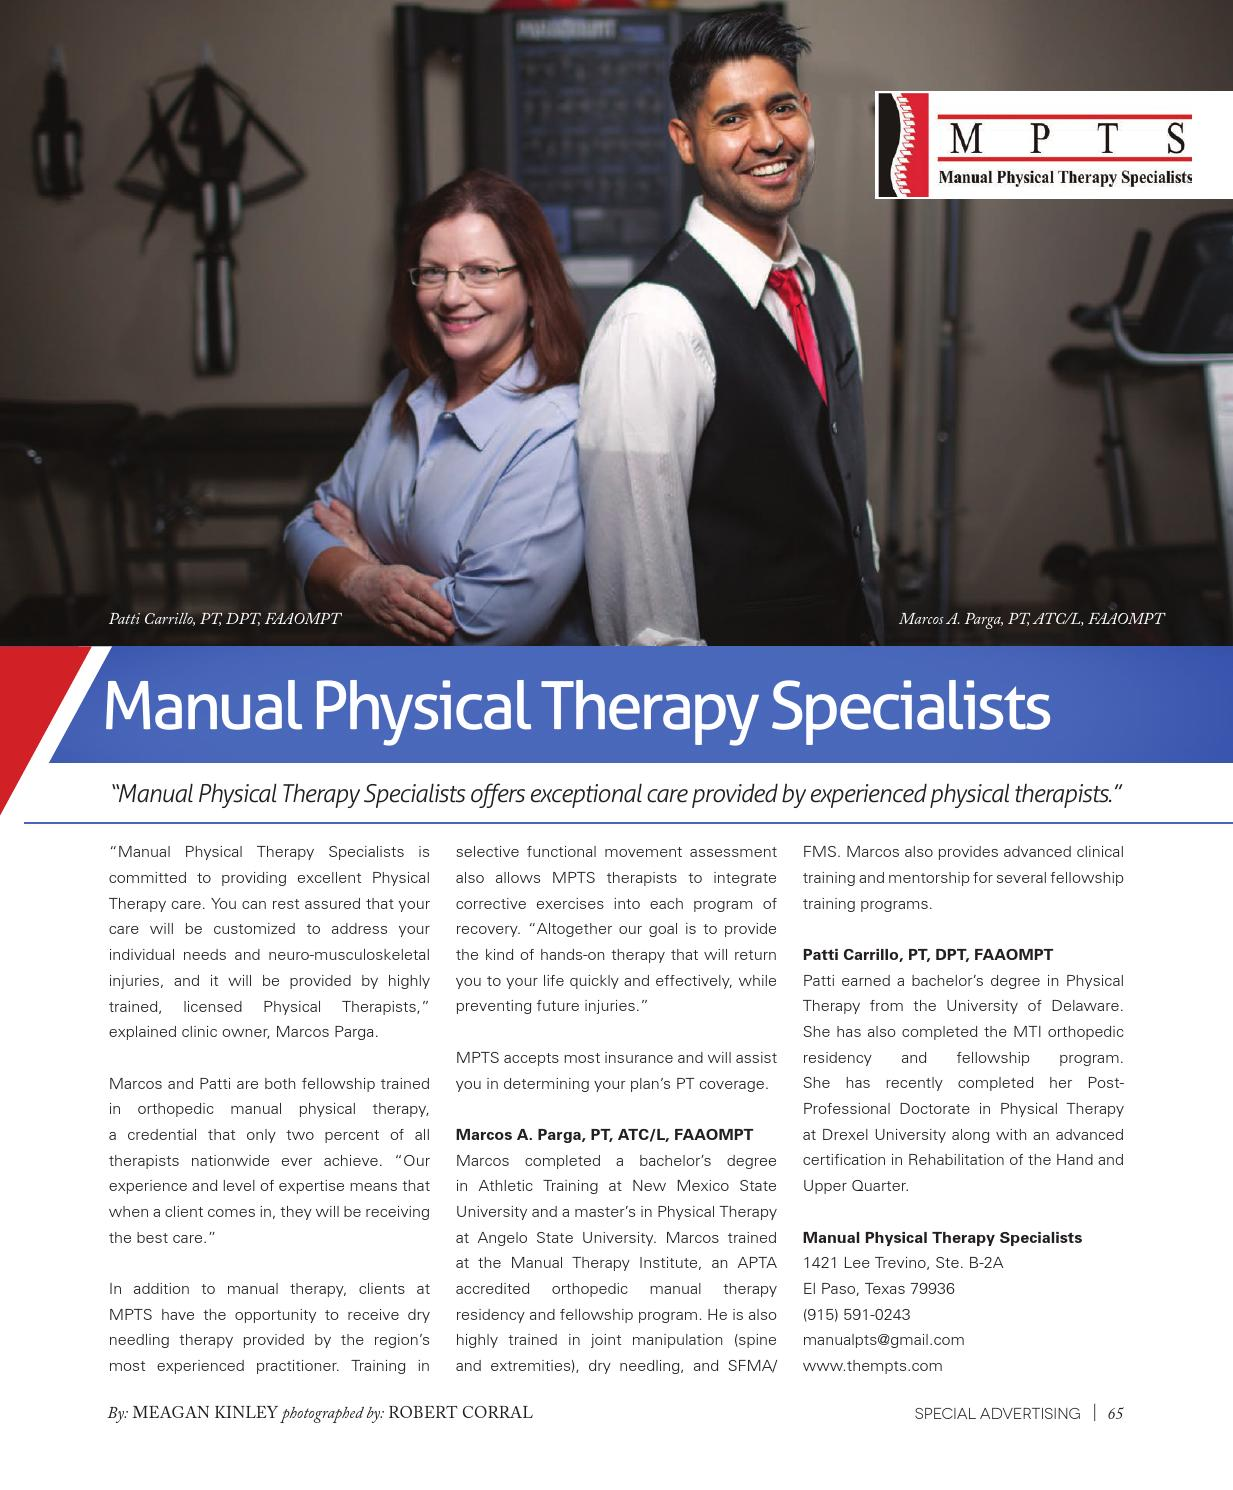 Advance physical therapy magazine - The City Magazine November 2015 By The City Magazine El Paso Las Cruces Issuu